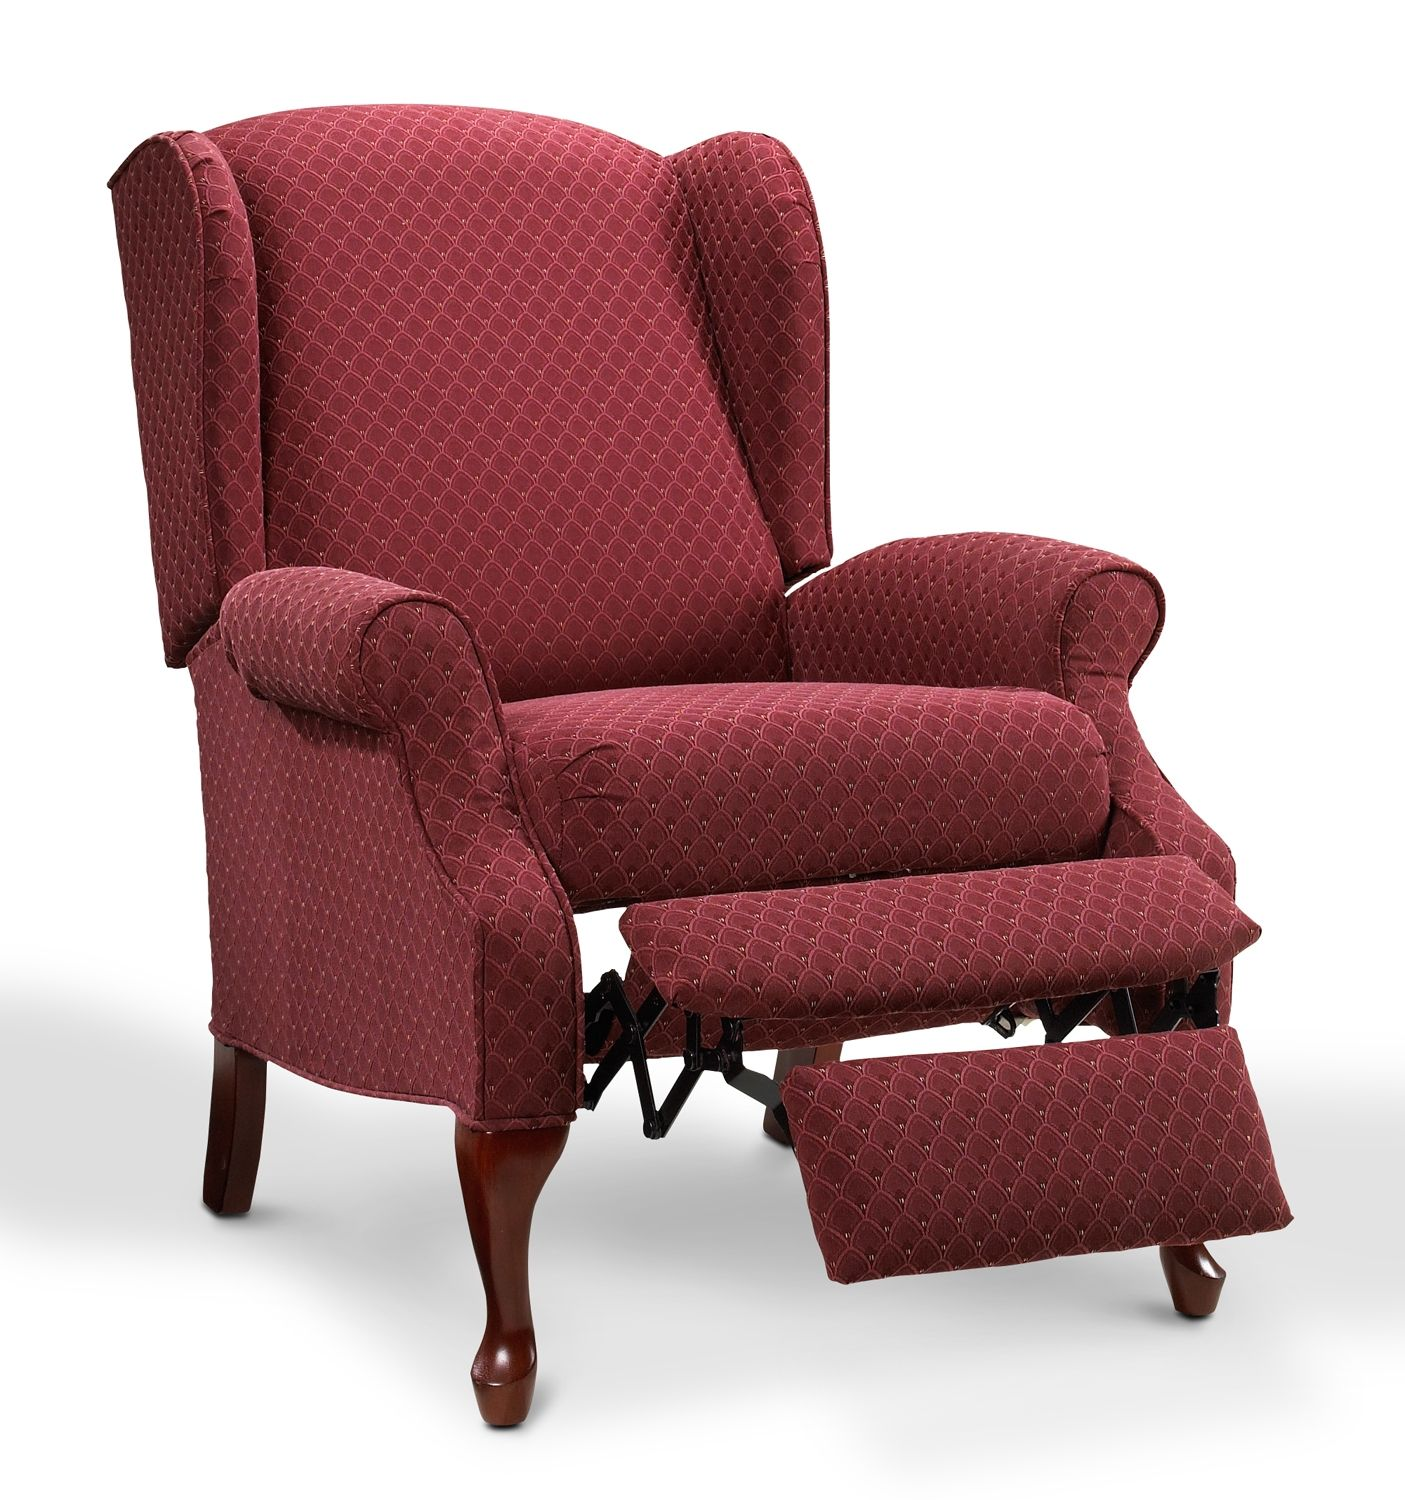 wing back recliner chairs Yahoo Image Search Results